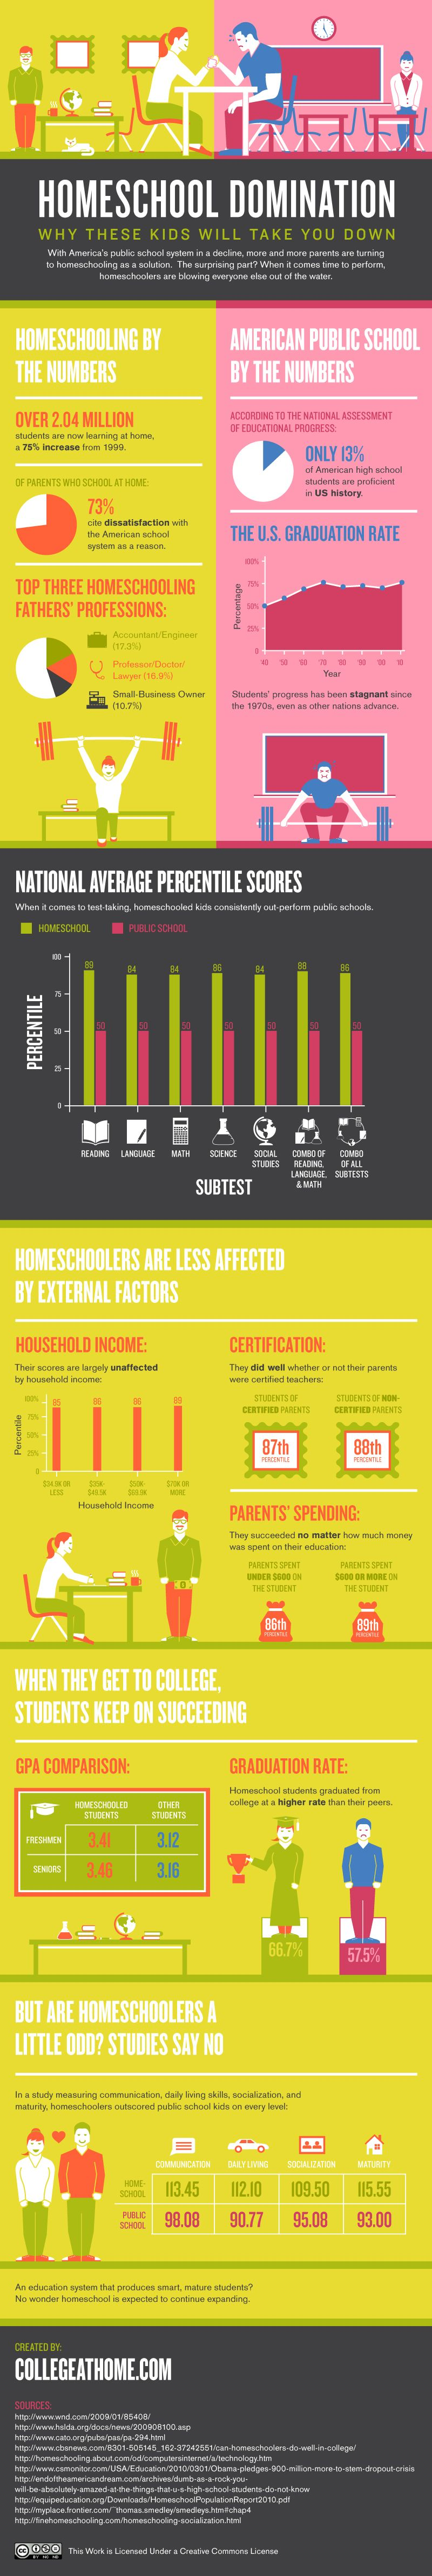 How do homeschooled students compare to those educated in